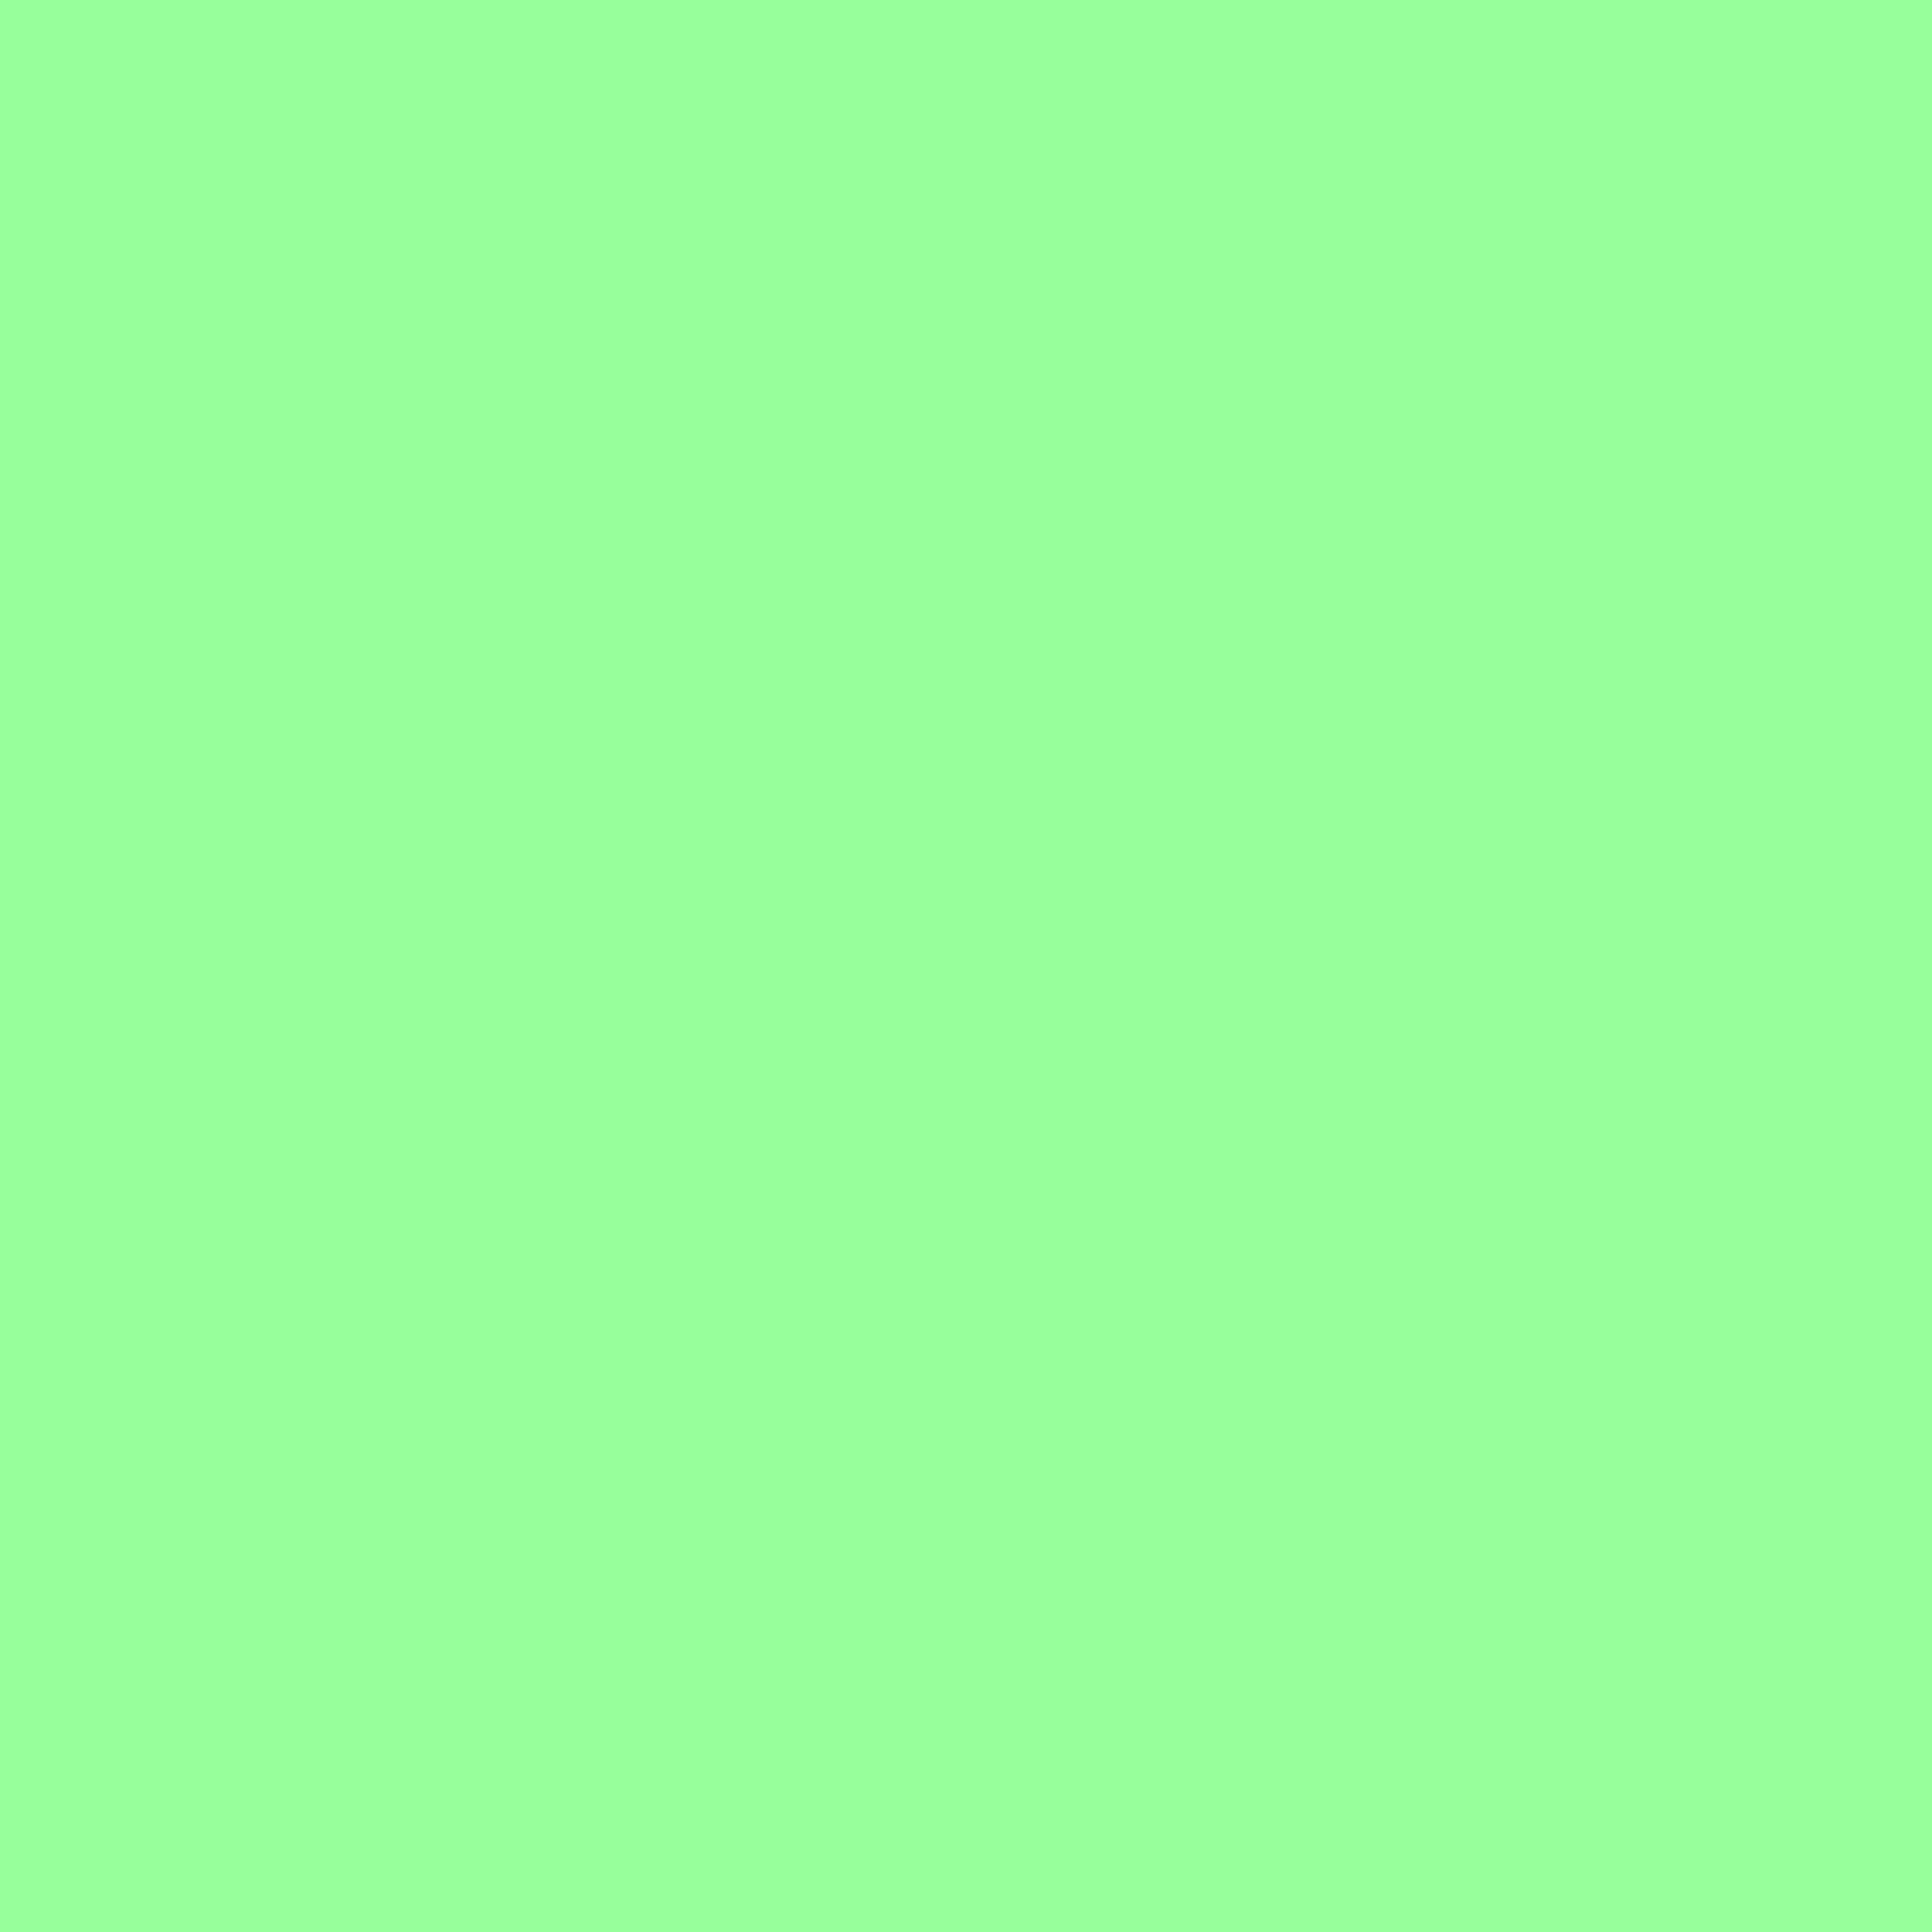 2048x2048 Mint Green Solid Color Background